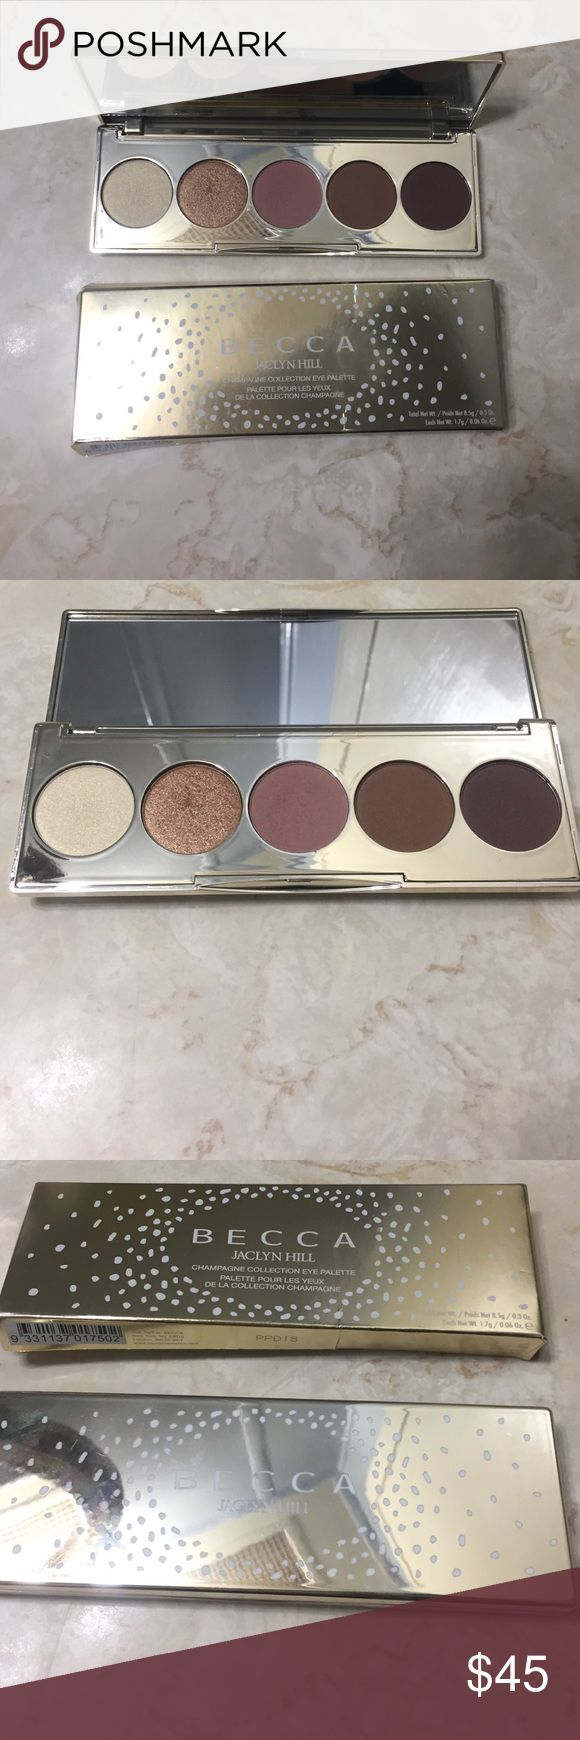 BECCA Champagne Pop Collection Eyeshadow Palette BECCA, Champagne Pop Collection Eyeshadow Palette, This is a Limited Edition Palette in my opinion it's a good Palette, I just don't reach for it as much, as other Palettes, NO TRADES, PRICE IS FIRM BECCA Makeup Eyeshadow